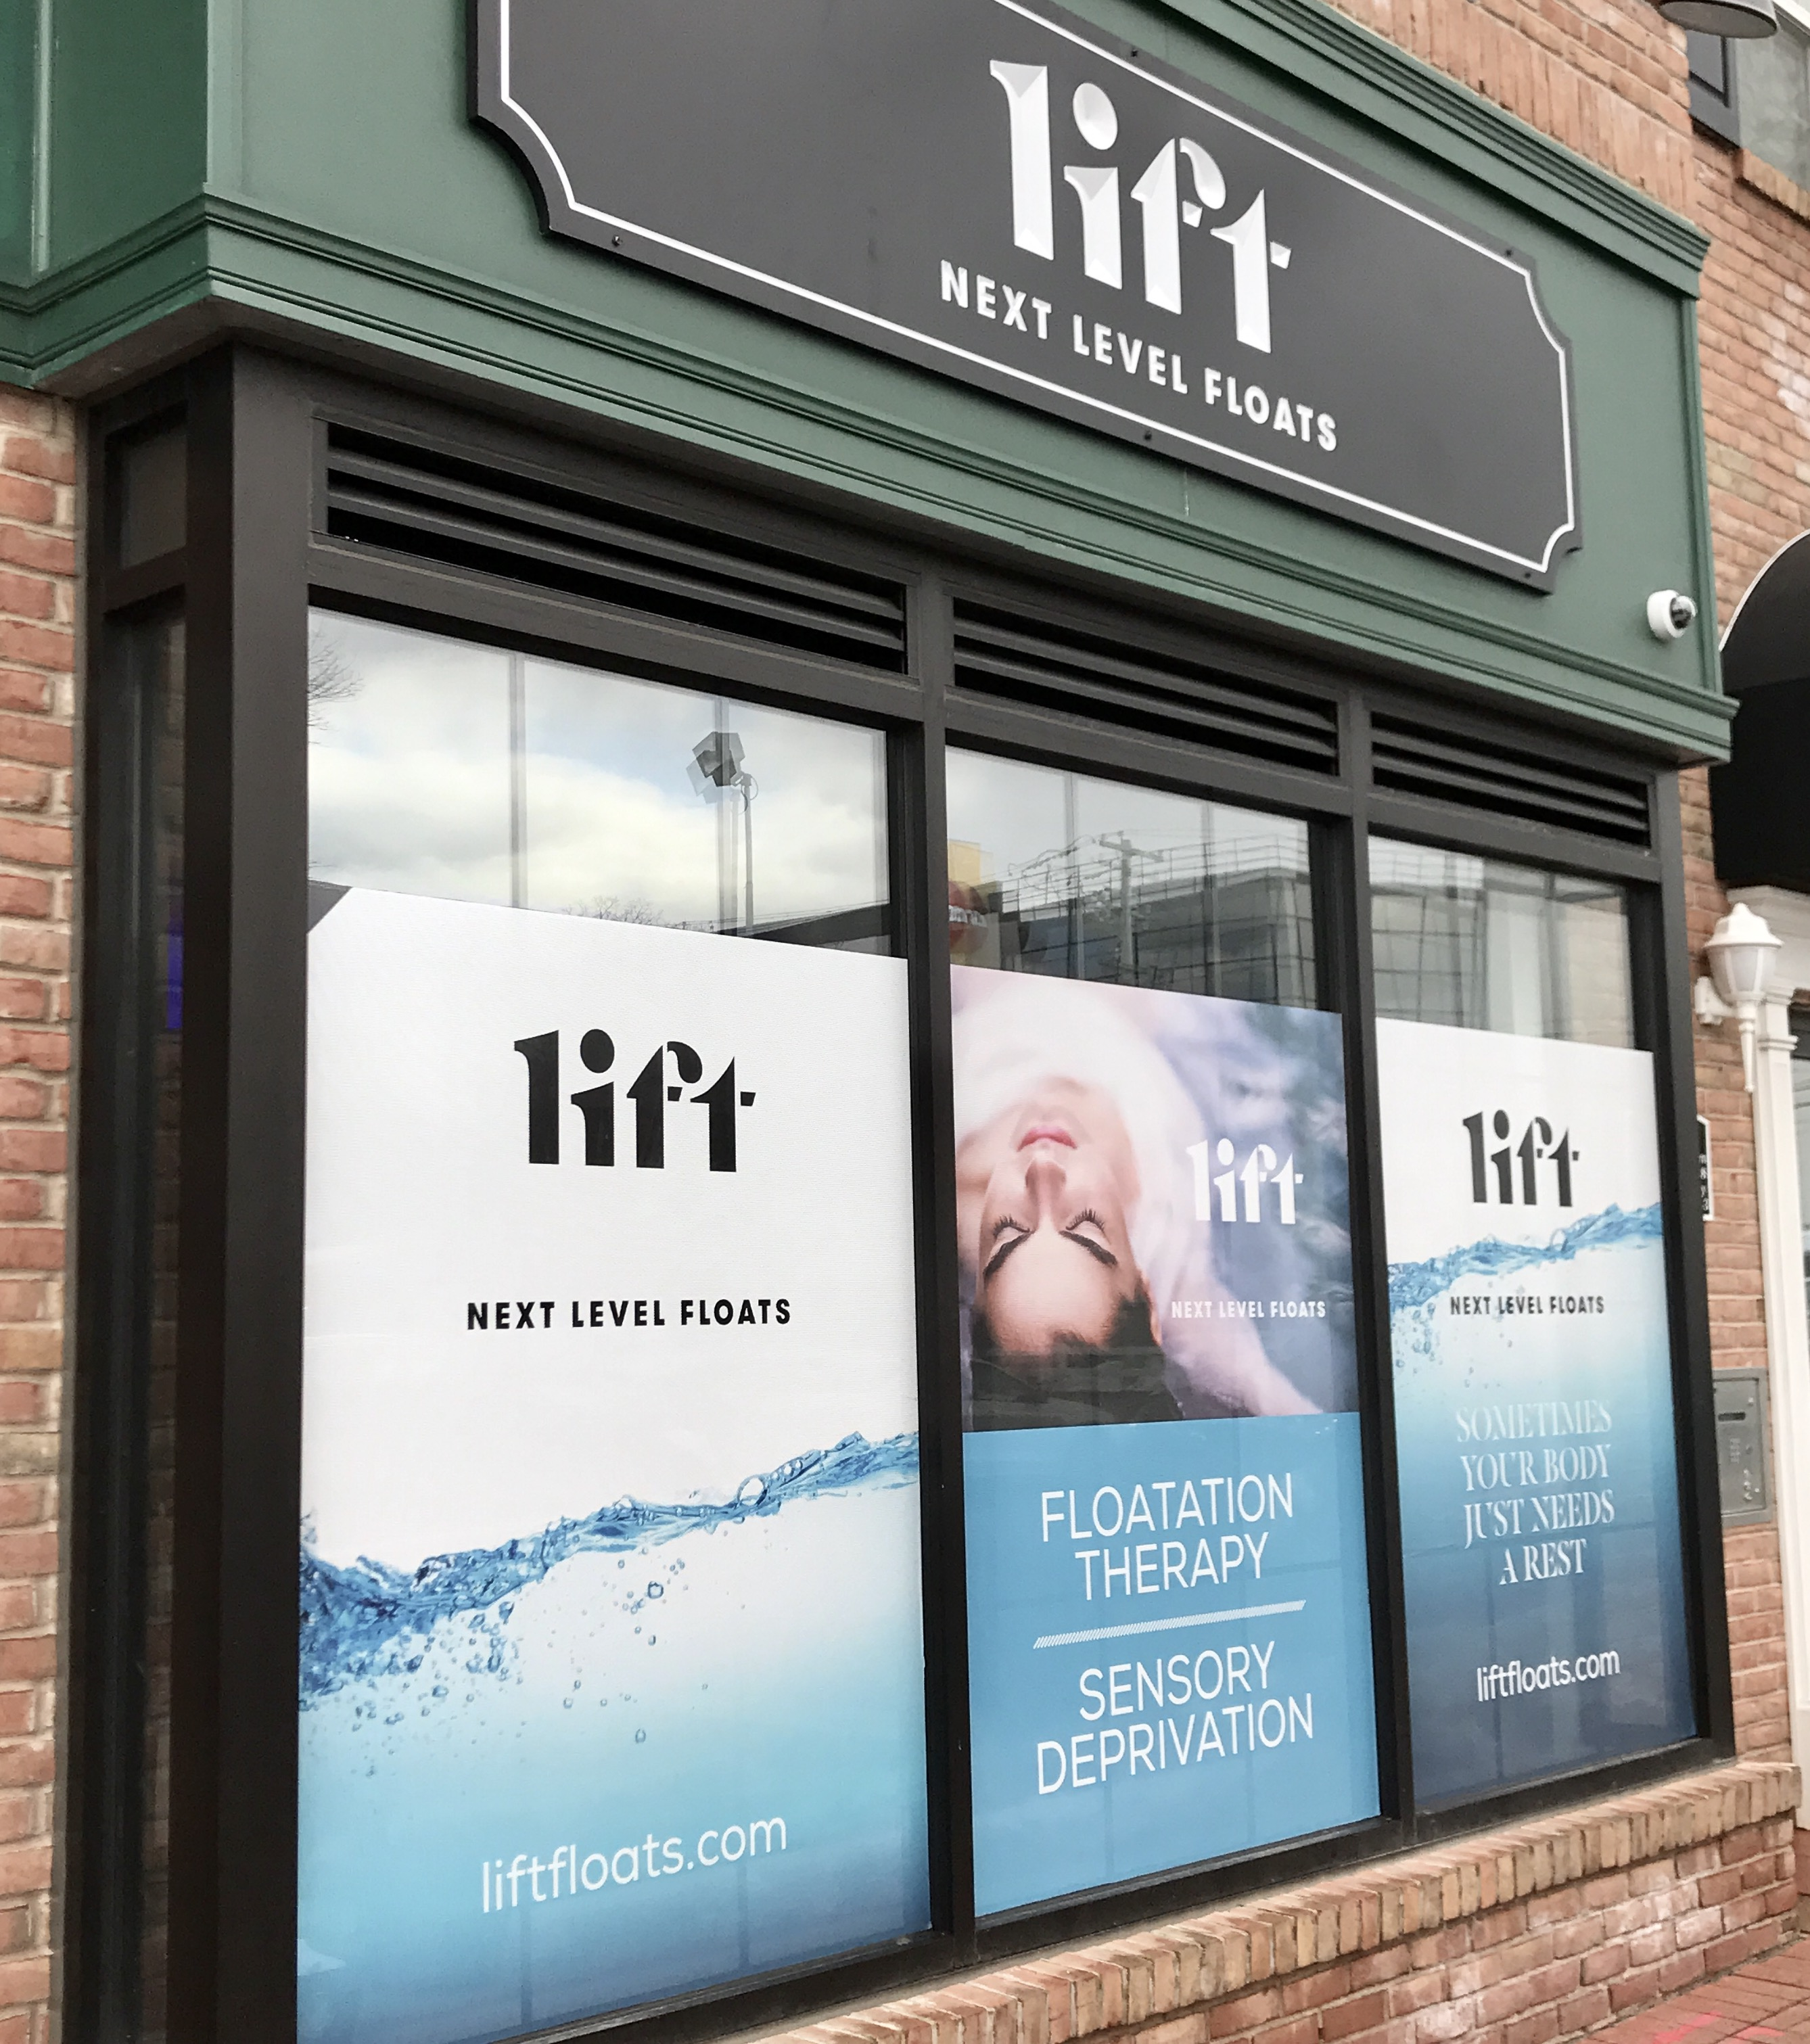 Lift / Next Level Floats (Huntington)